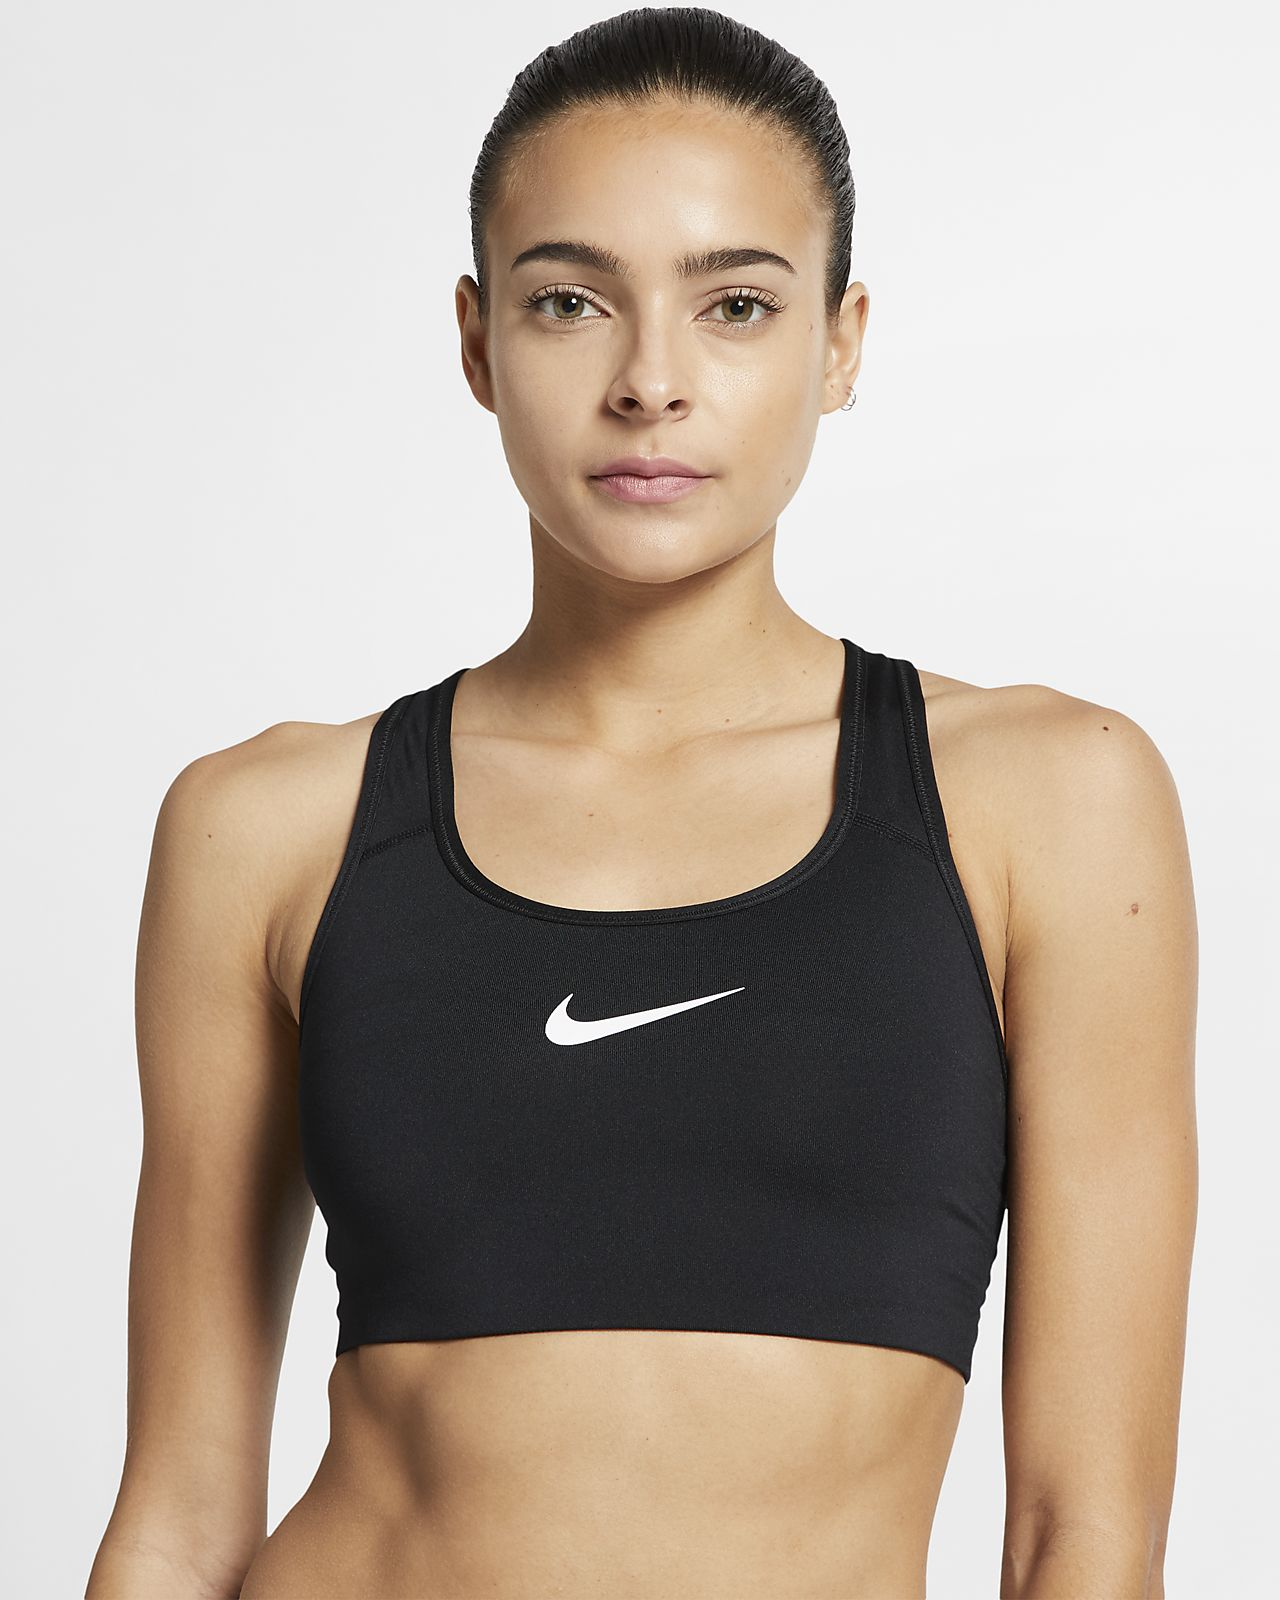 Nike Women's Swoosh Medium-Support Sports Bra